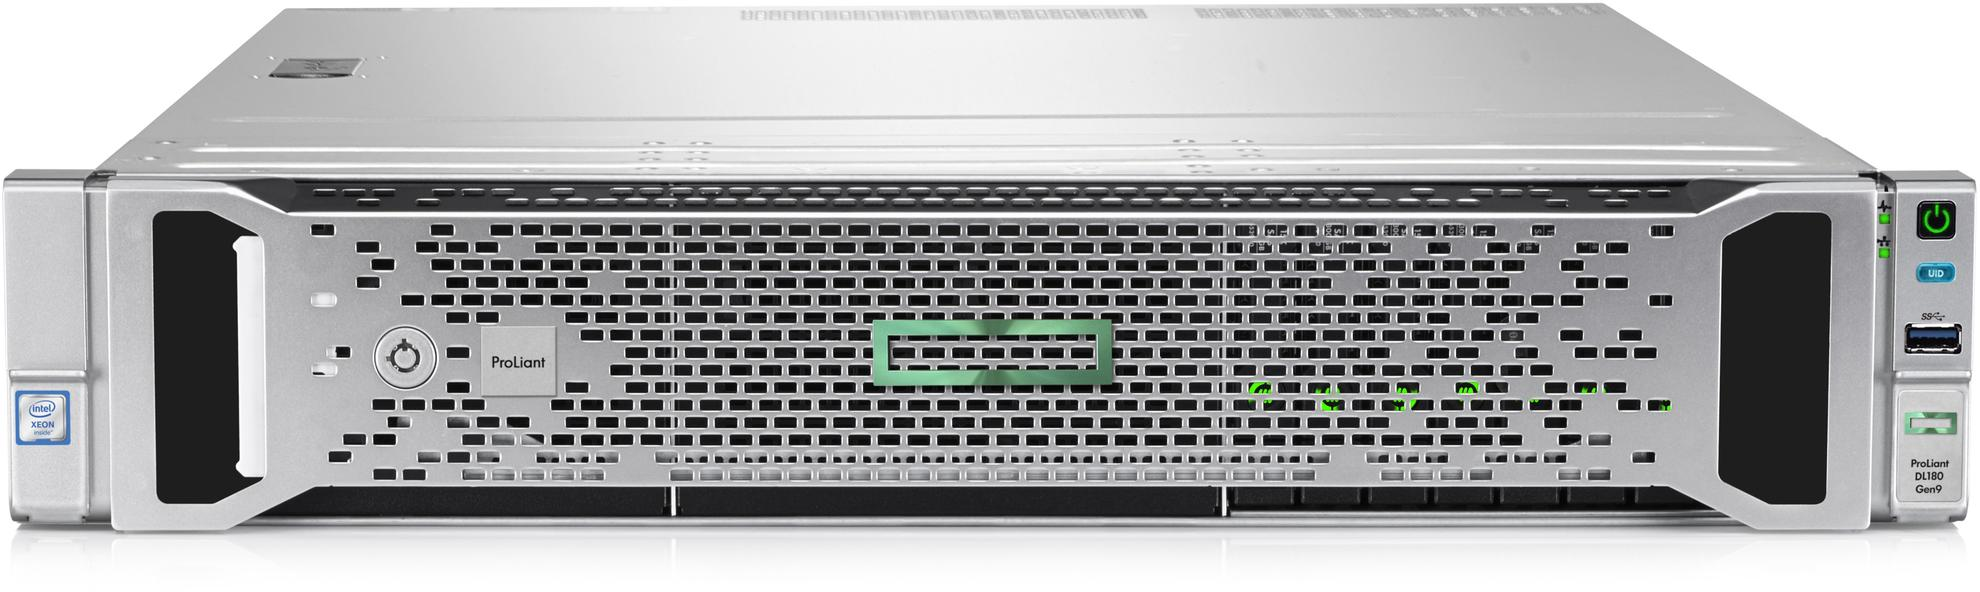 Сервер Proliant DL180 Gen9 E5-2609v4 Hot Plug Rack(2U)/Xeon8C 1.7GHz(20Mb)/1x8GbR1D_2400/H240(ZM/RAI